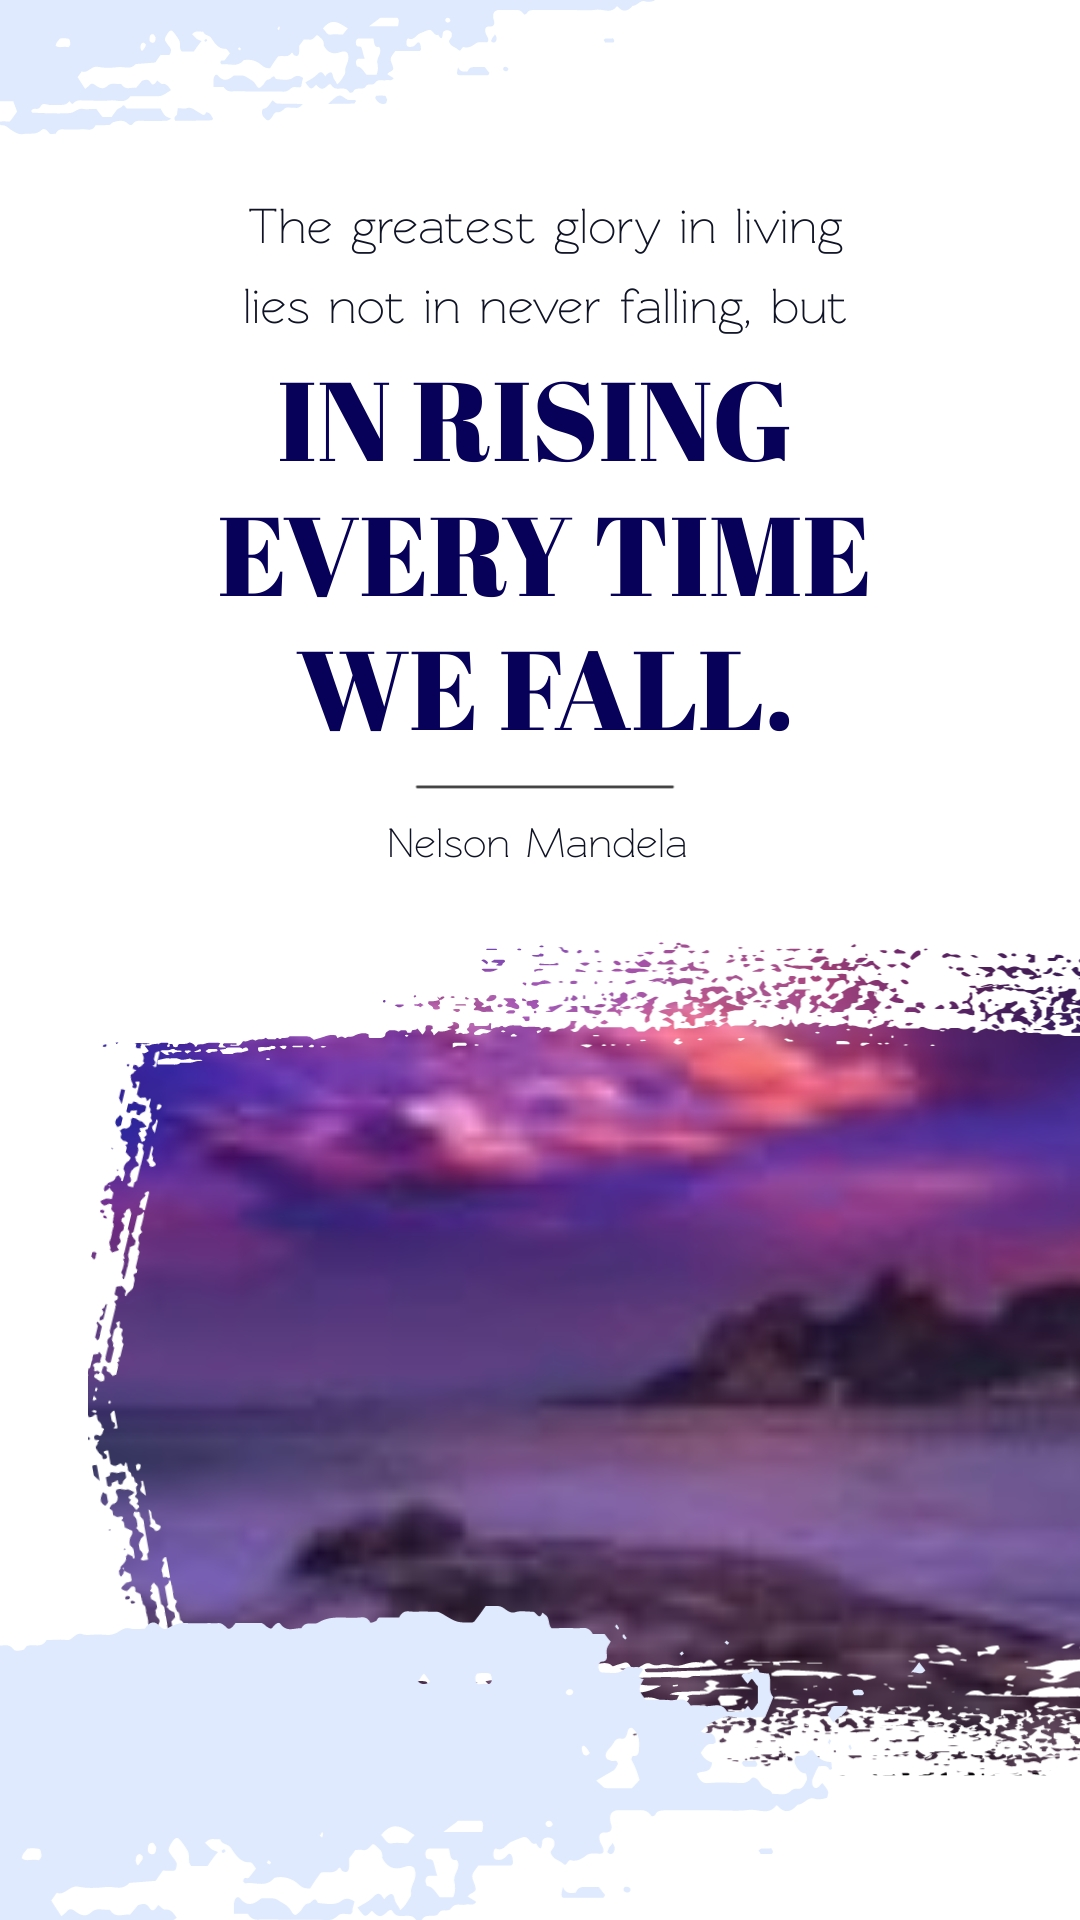 Nelson Mandela Animated Quote Vertical Template